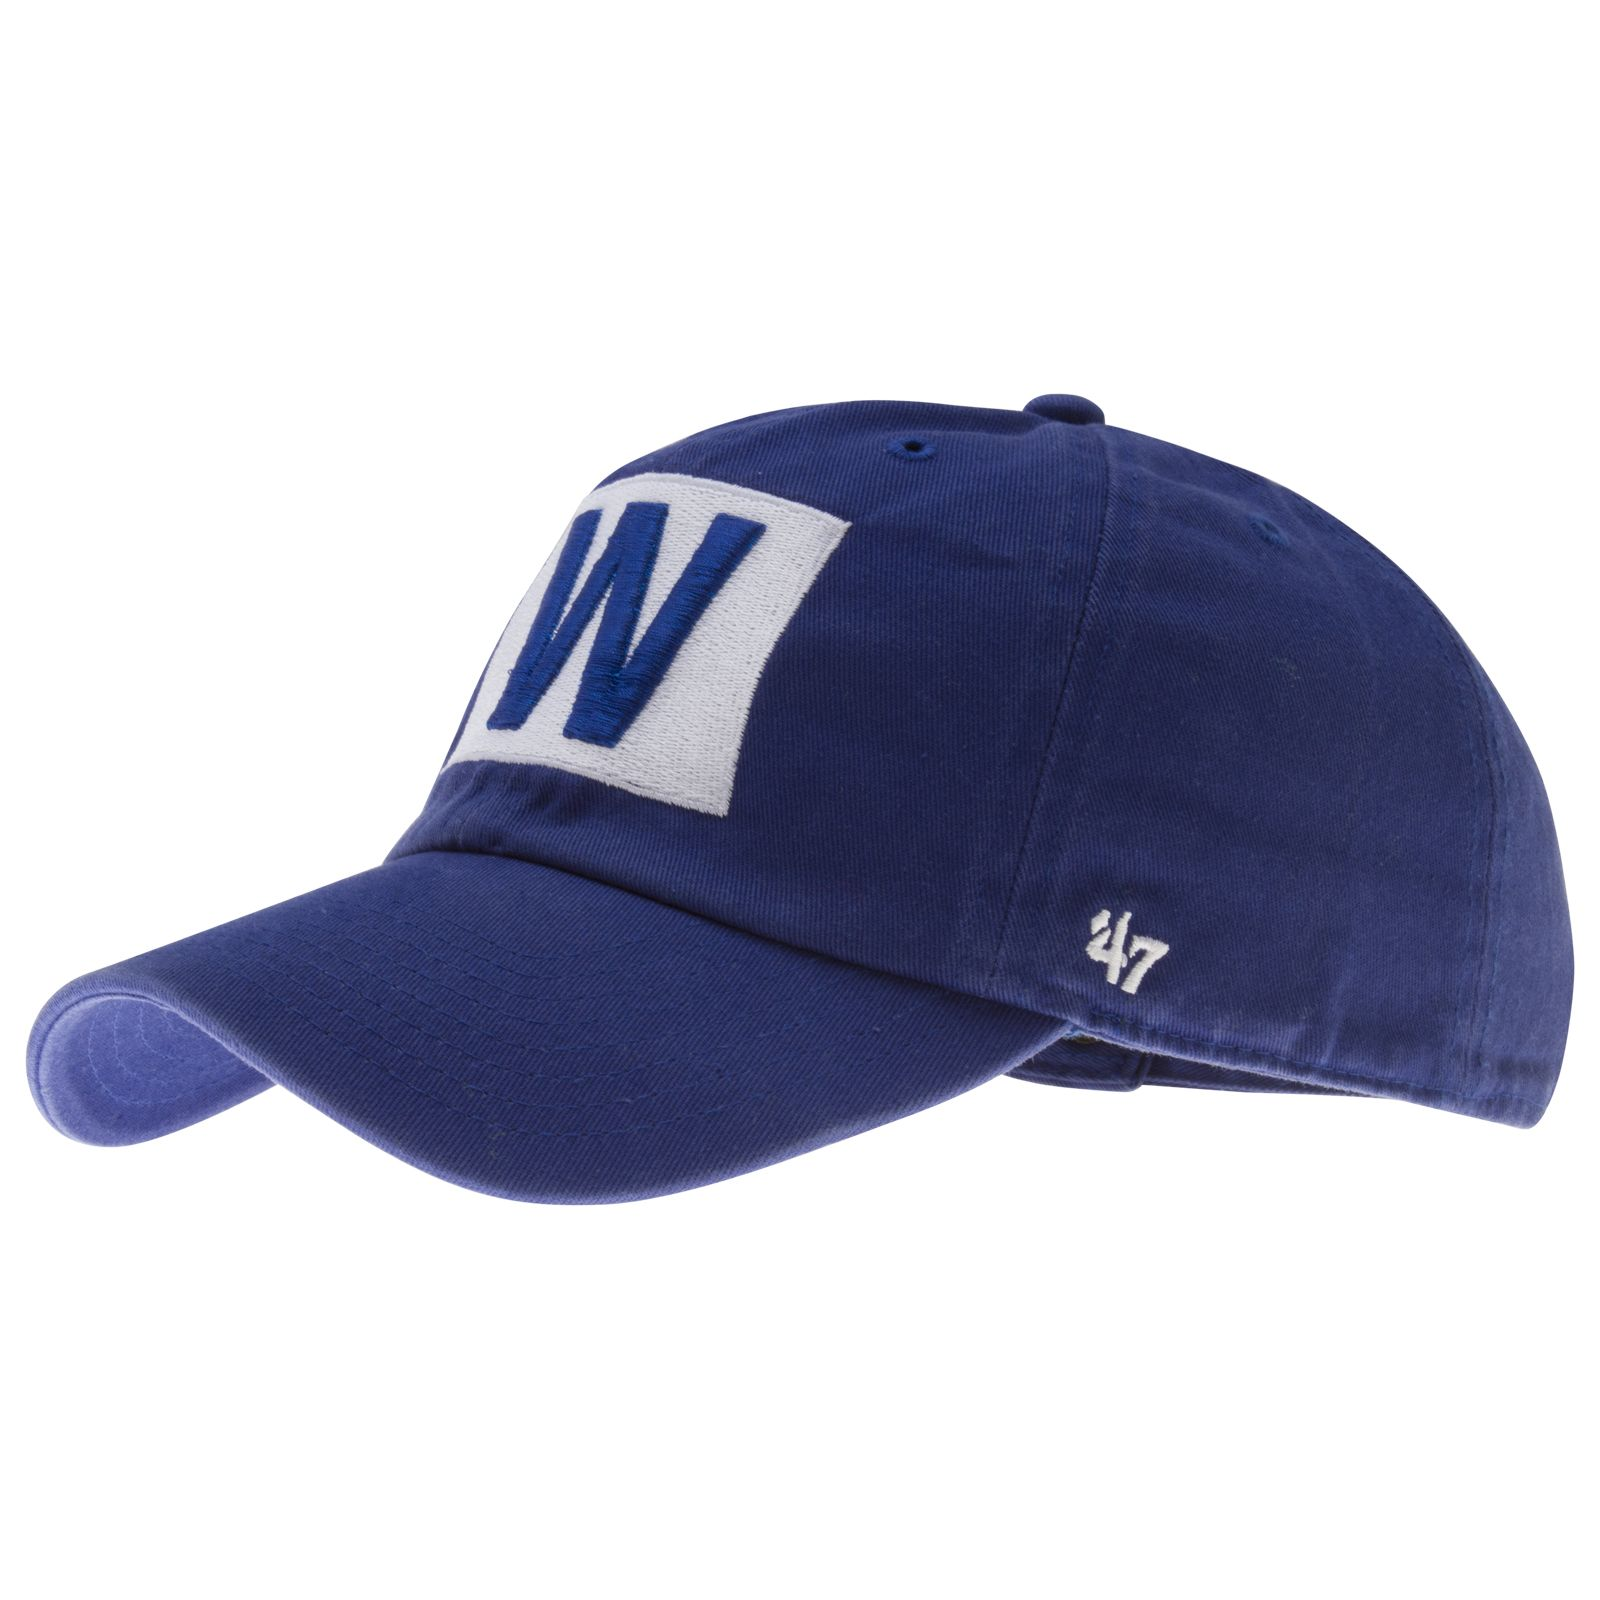 Chciago Cubs Royal Blue W Flag Slouch Crown Clean-Up Adjustable Hat by  47   Chicago  Cubs  ChicagoCubs ae43dd4e788